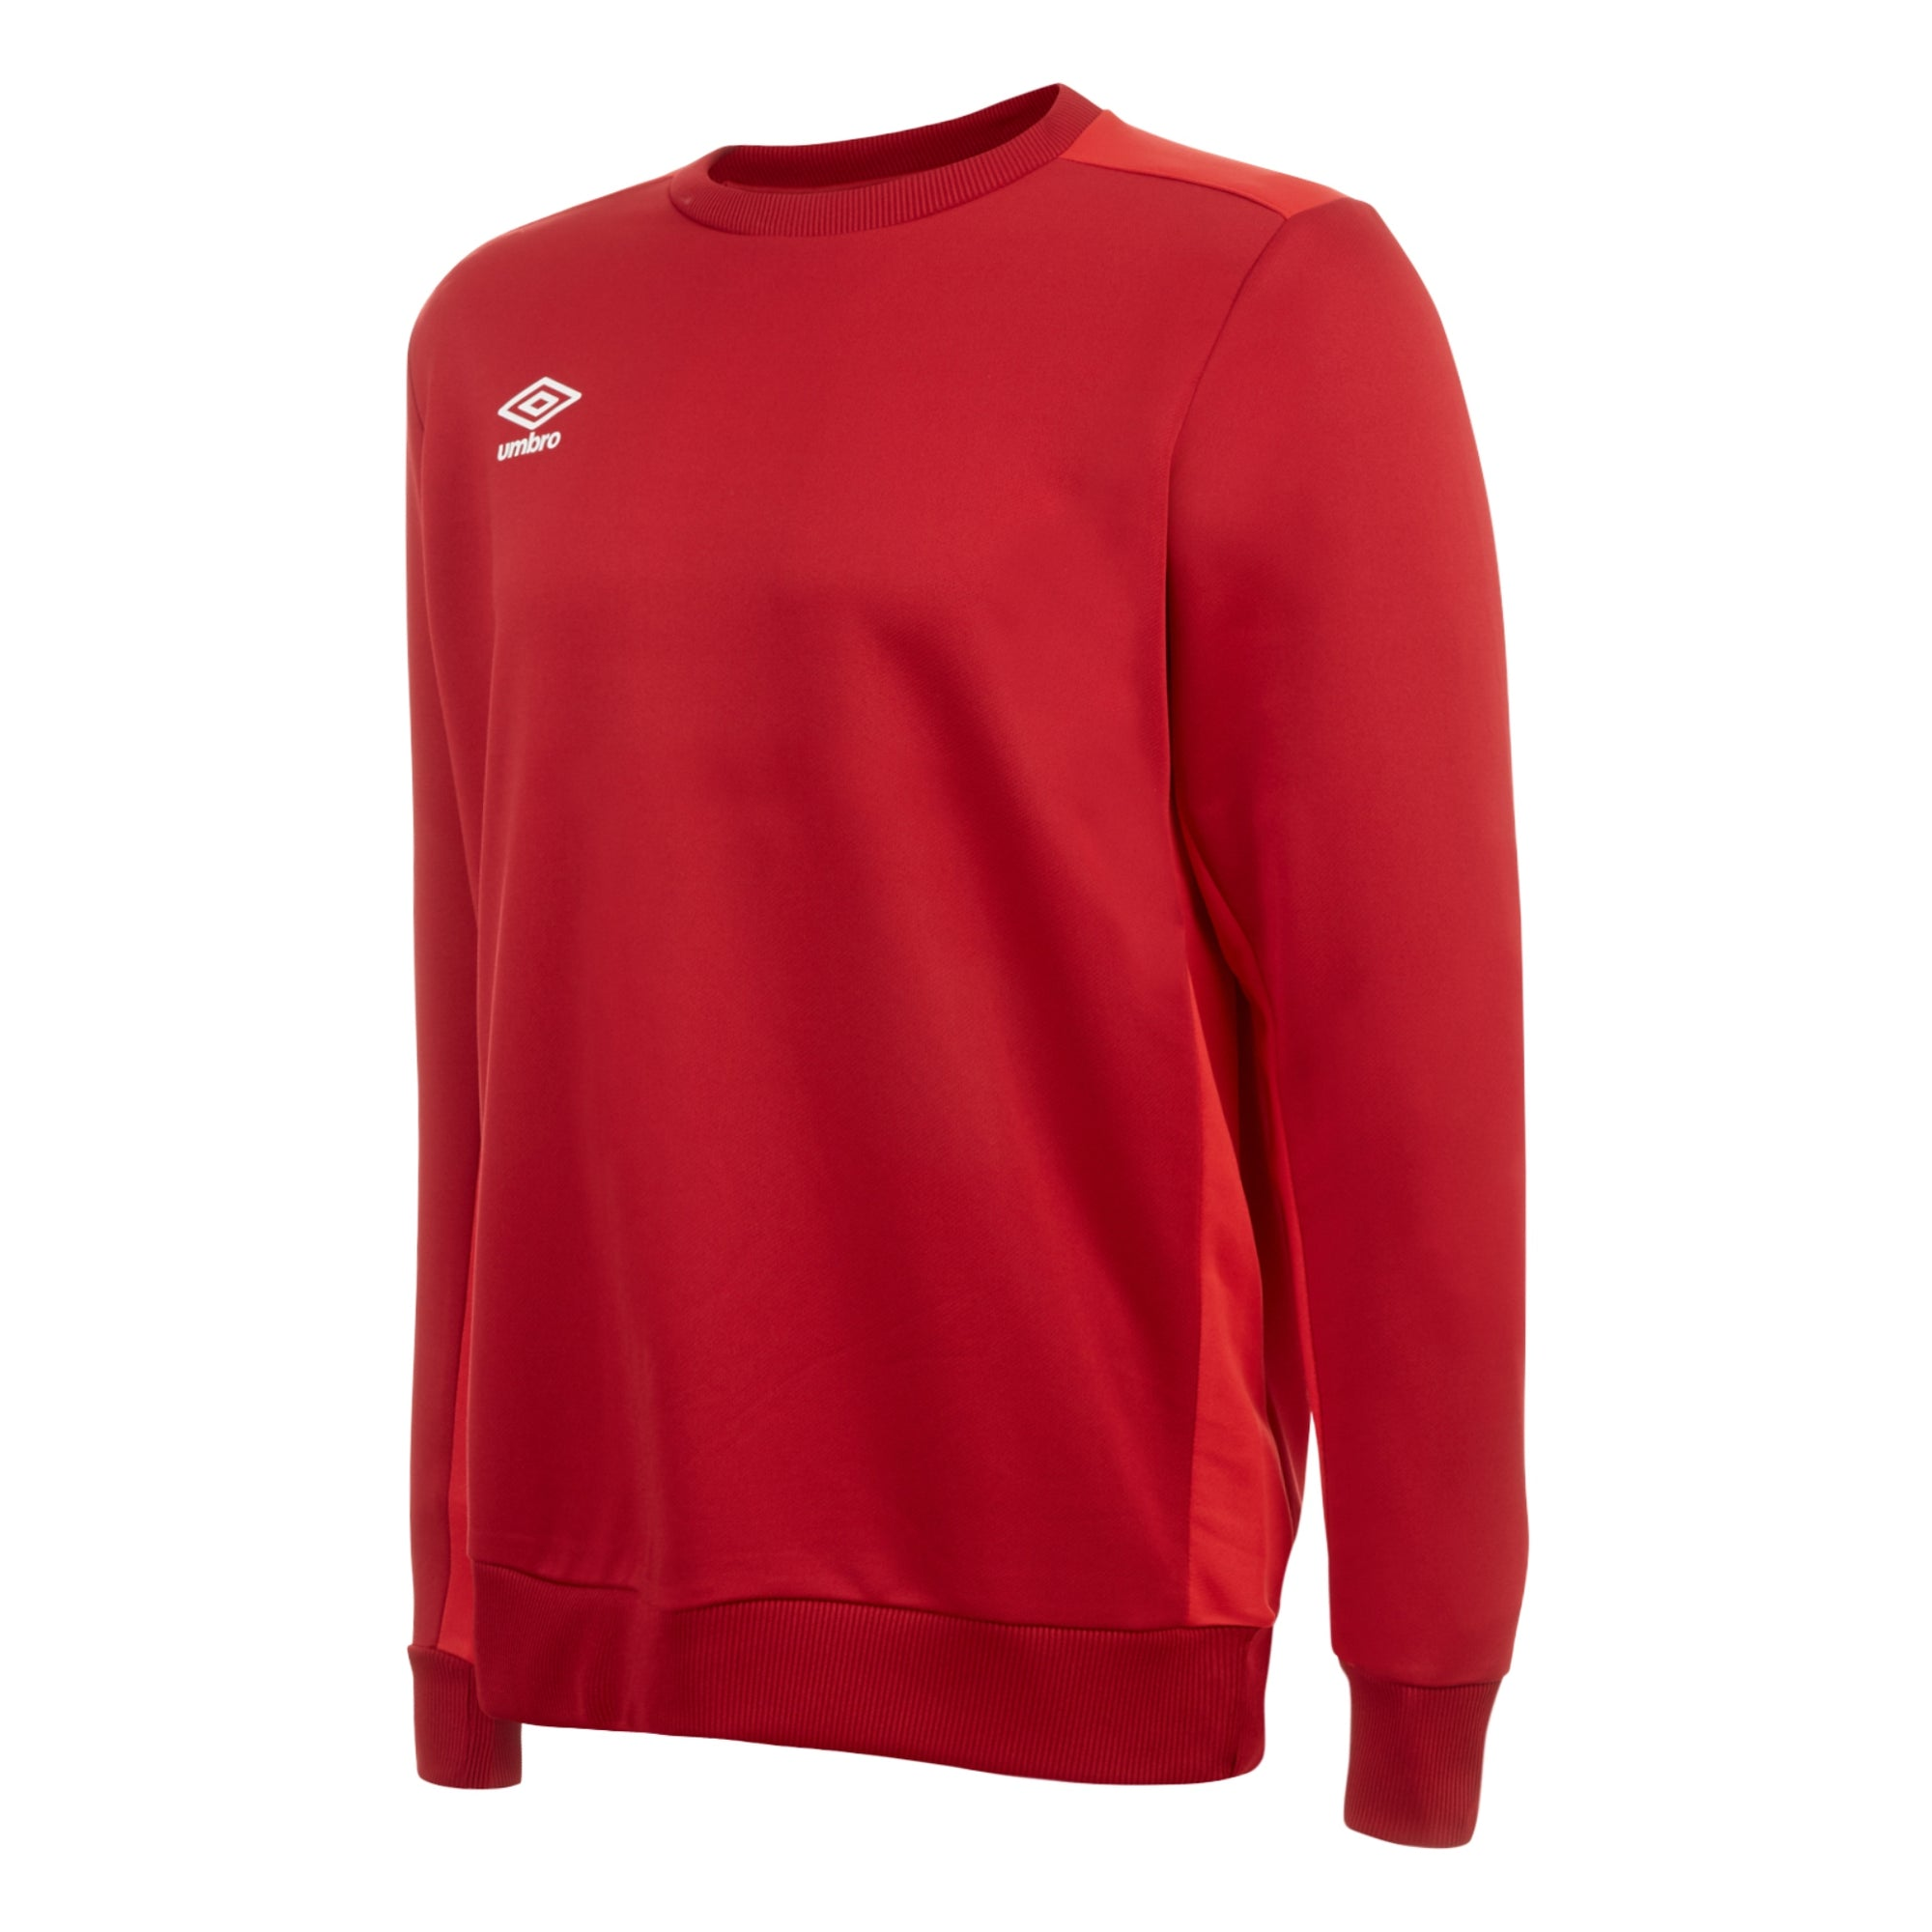 Umbro training poly sweat in vermillion with contrast jester red shoulder and side panels